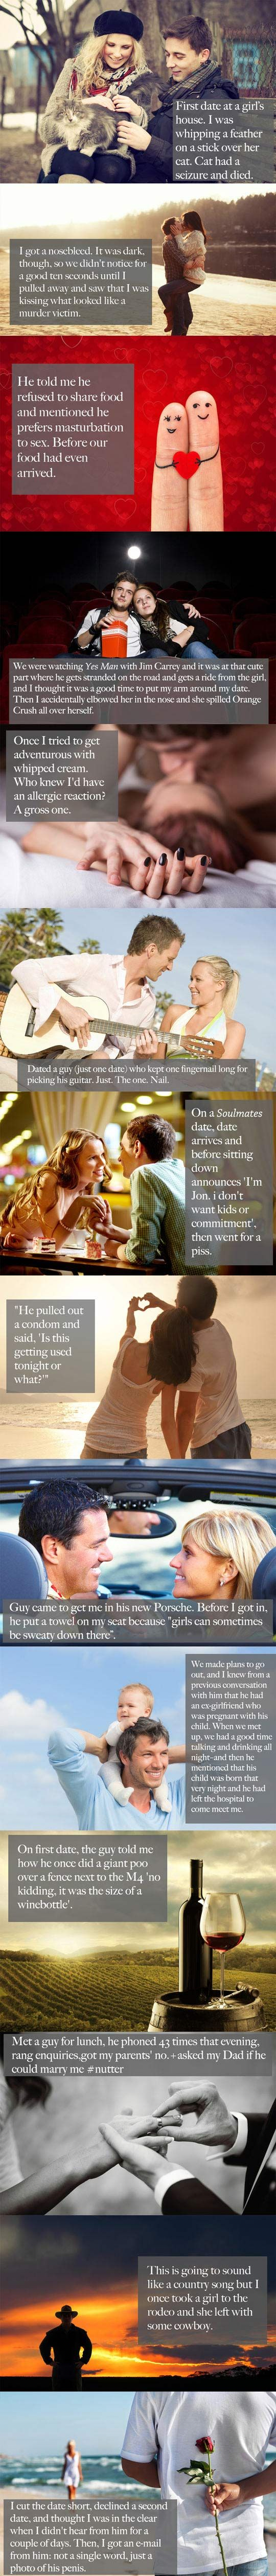 love quotes for first dating We now have over two million famous quotes and movie quotes, which is, by far, the largest collection of famous quotes on the web we have also selectively chosen a large collection of inspirational quotes, quotes about life, motivational quotes, friendship quotes, graduation quotesand and funny quotes to help motivate and.